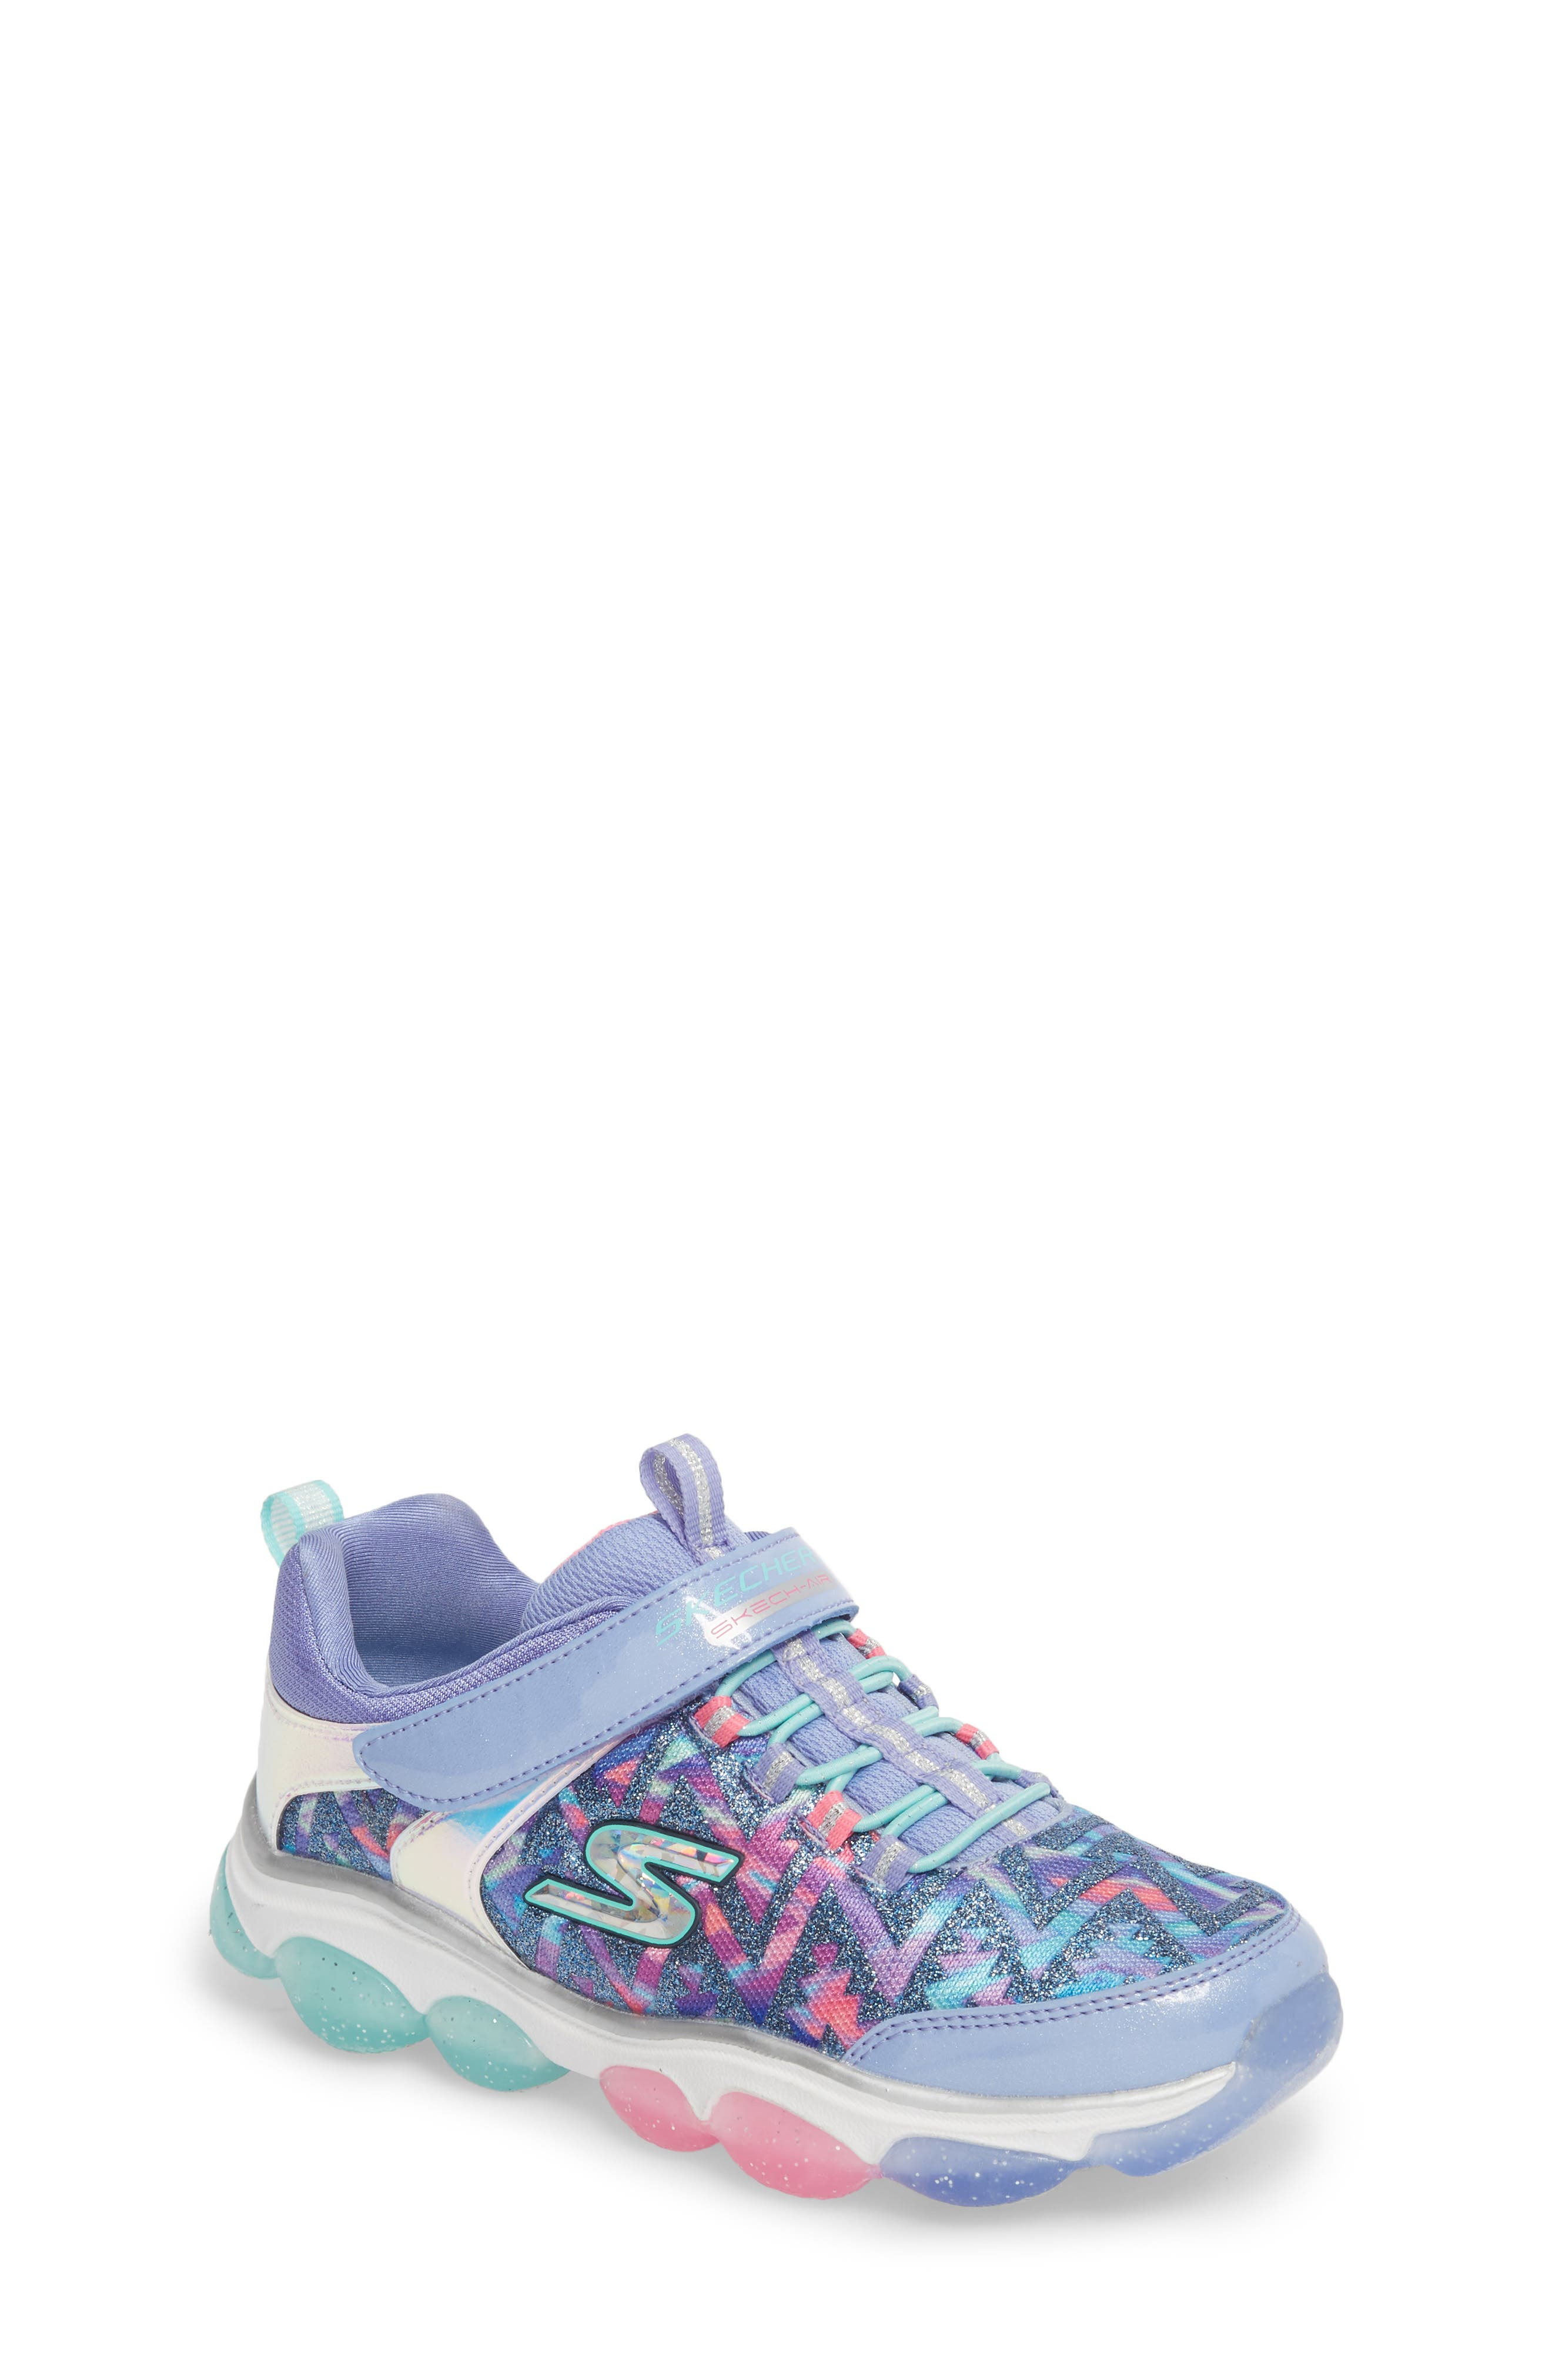 SKECHERS Skech-Air Groove Glitter N Go Sneakers (Toddler, Little Kid & Big Kid)